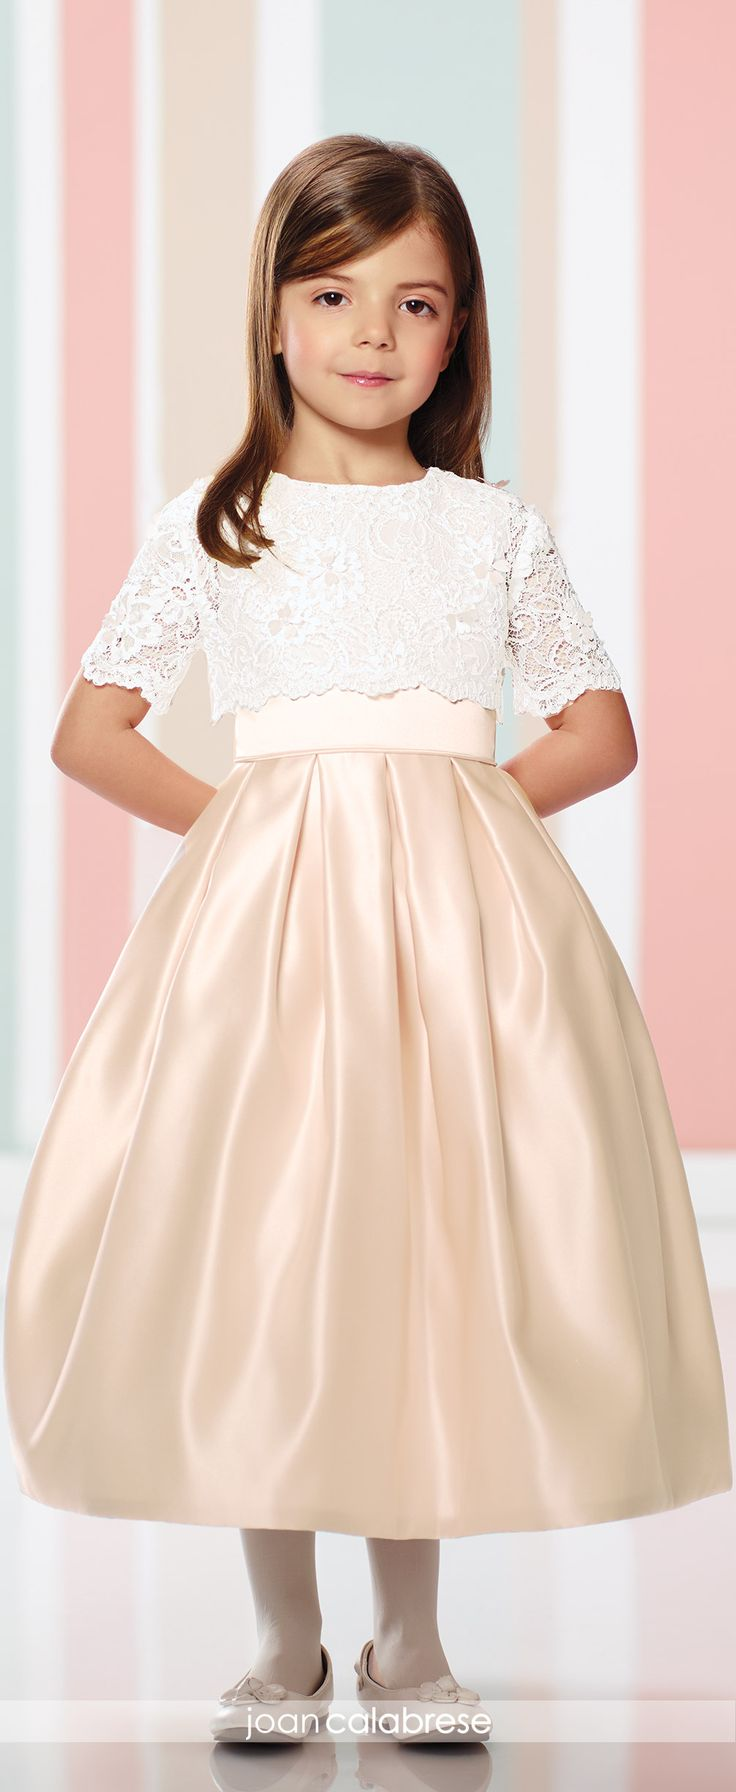 Joan Calabrese for Mon Cheri - Fall 2016 - Style No. 216301 - satin and lace two piece flower girl dress